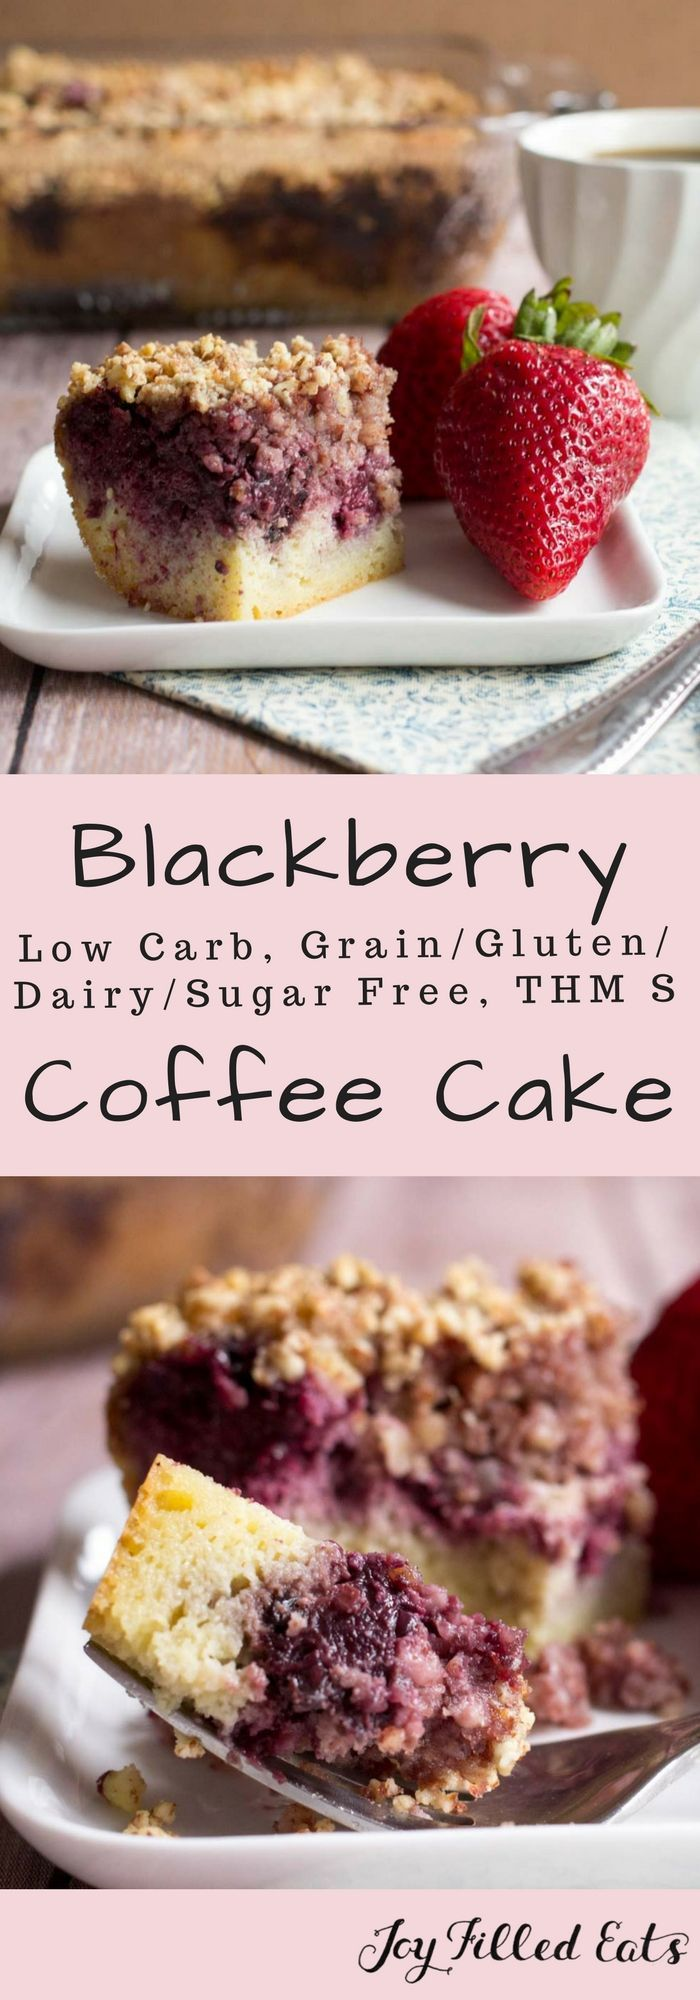 Blackberry Coffee Cake - Low Carb, Grain, Gluten, Dairy, & Sugar Free, THM S - This Blackberry Coffee Cake is my new fave breakfast. It is moist & flavorful with a crunchy almond topping. It pairs nicely with berries & a cup of coffee. via @joyfilledeats